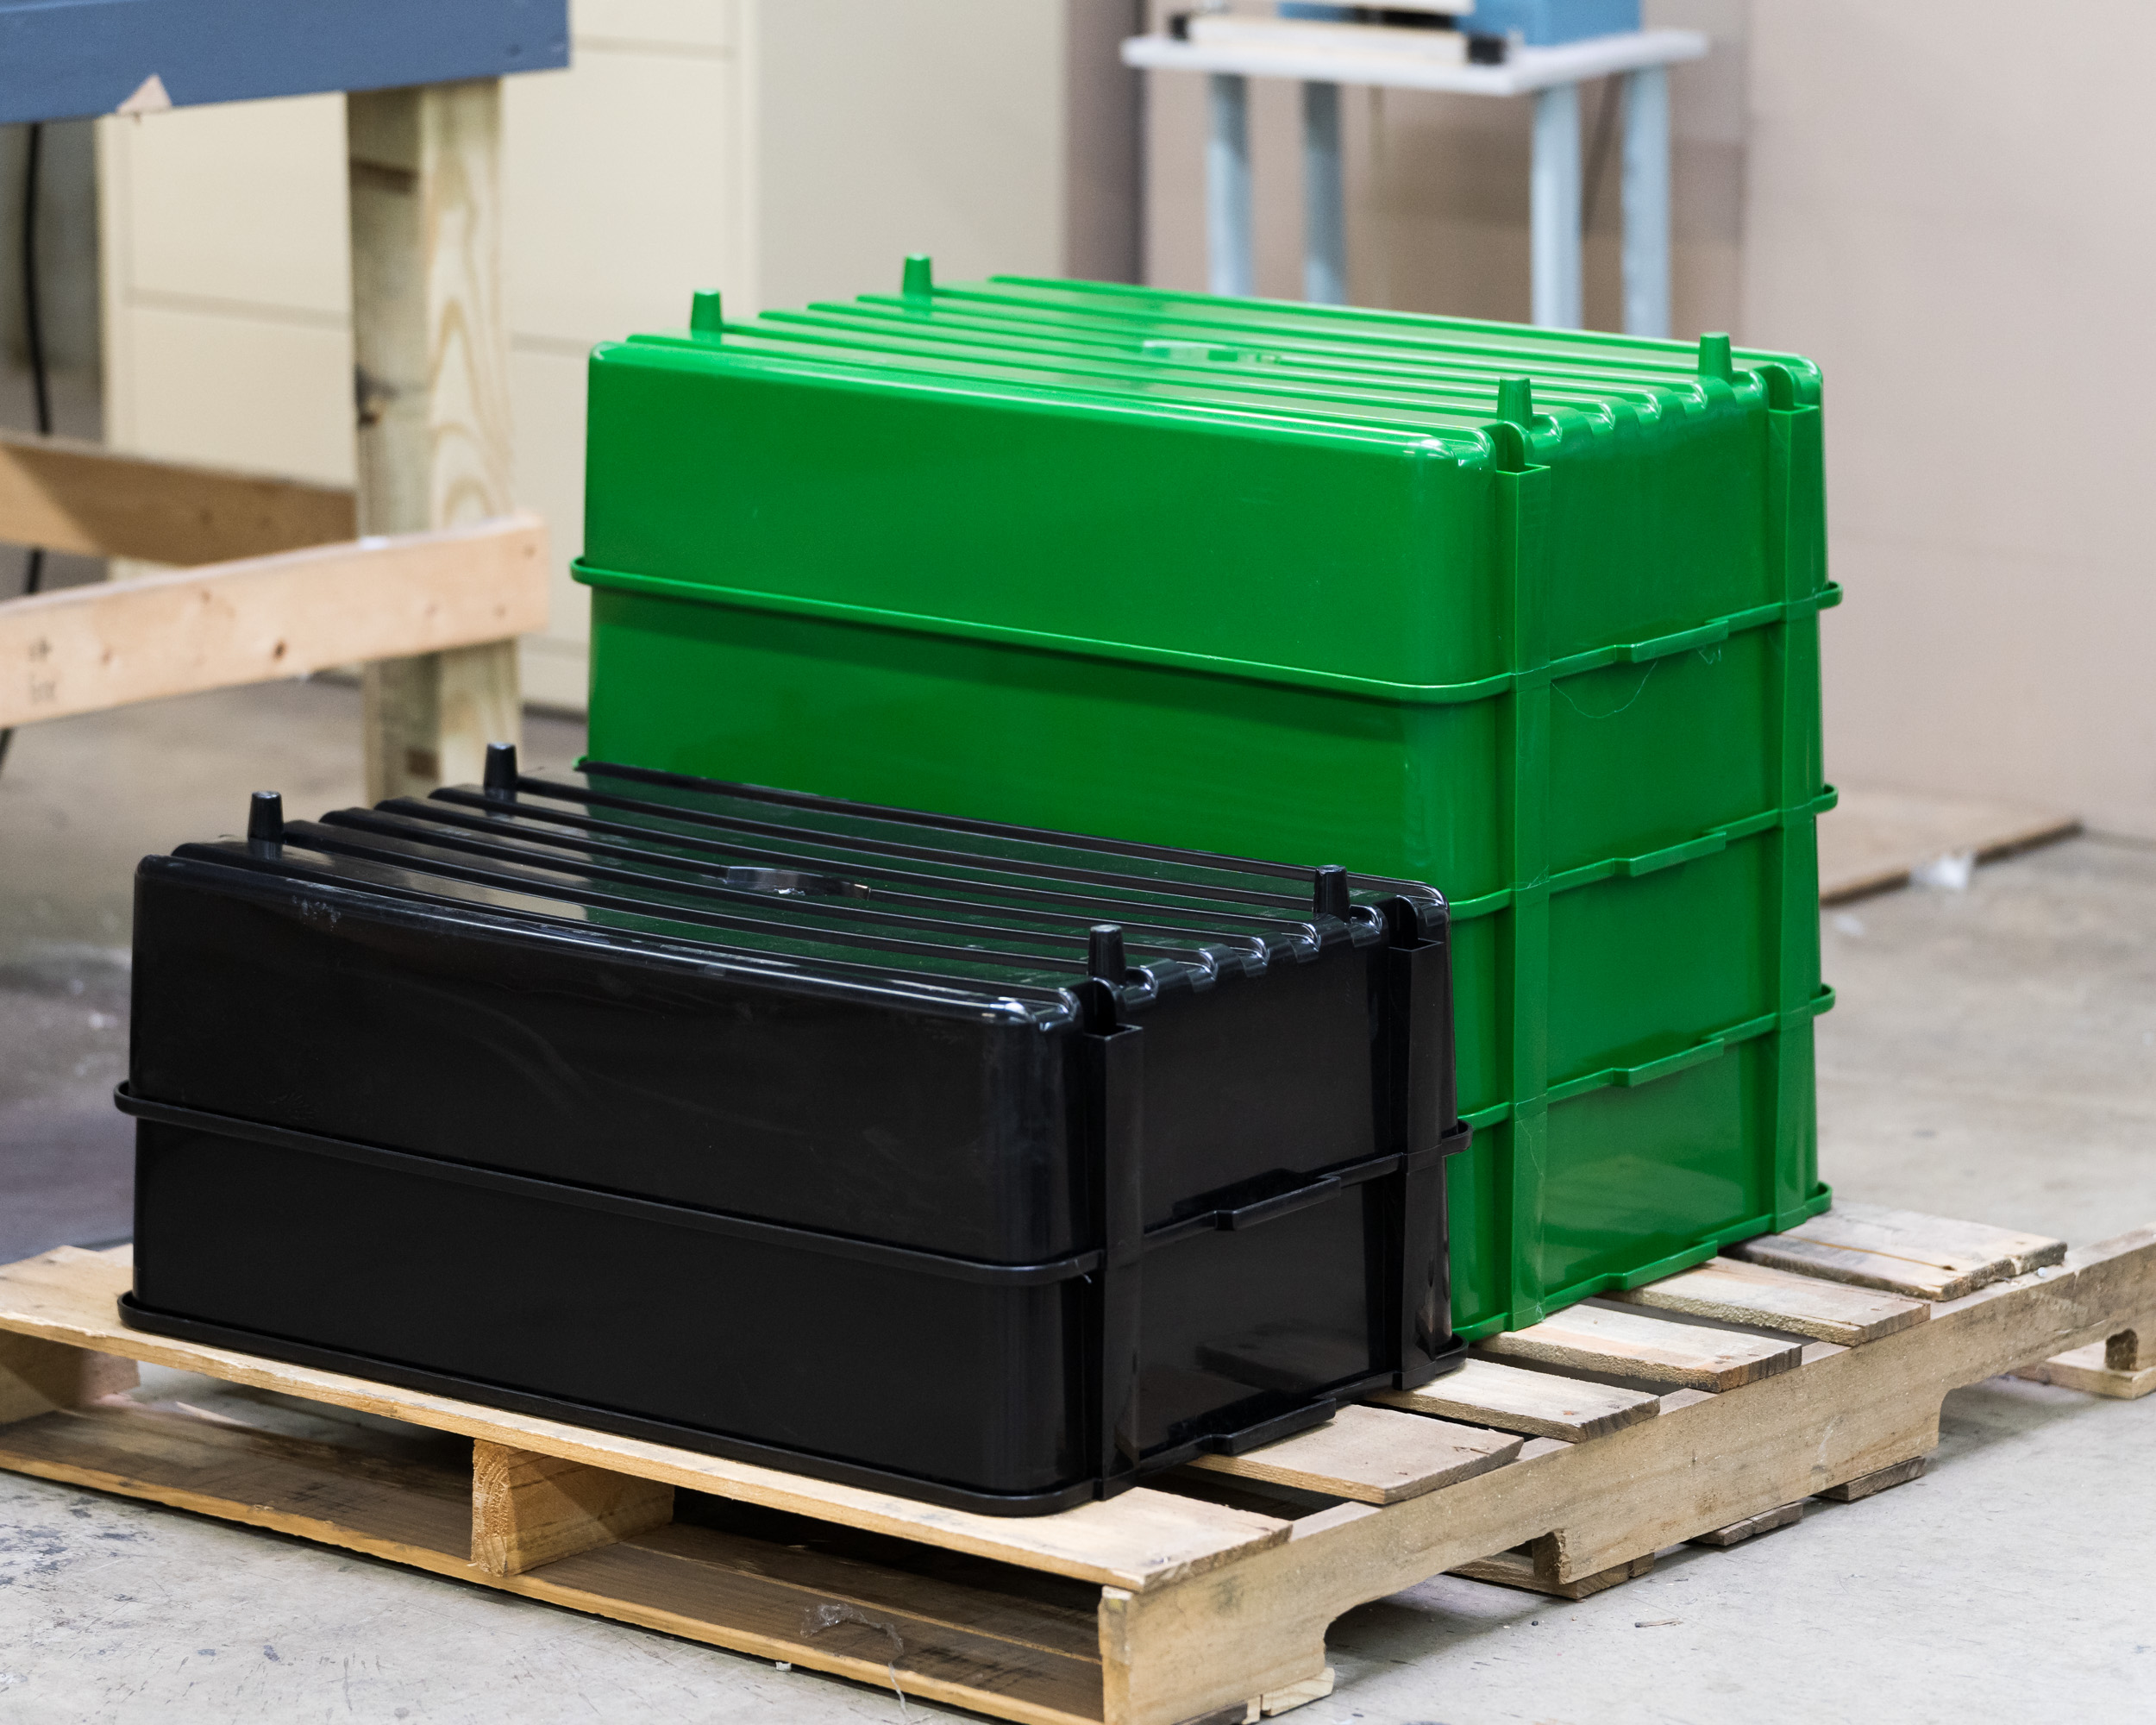 Black and green containers stacked on a pallet